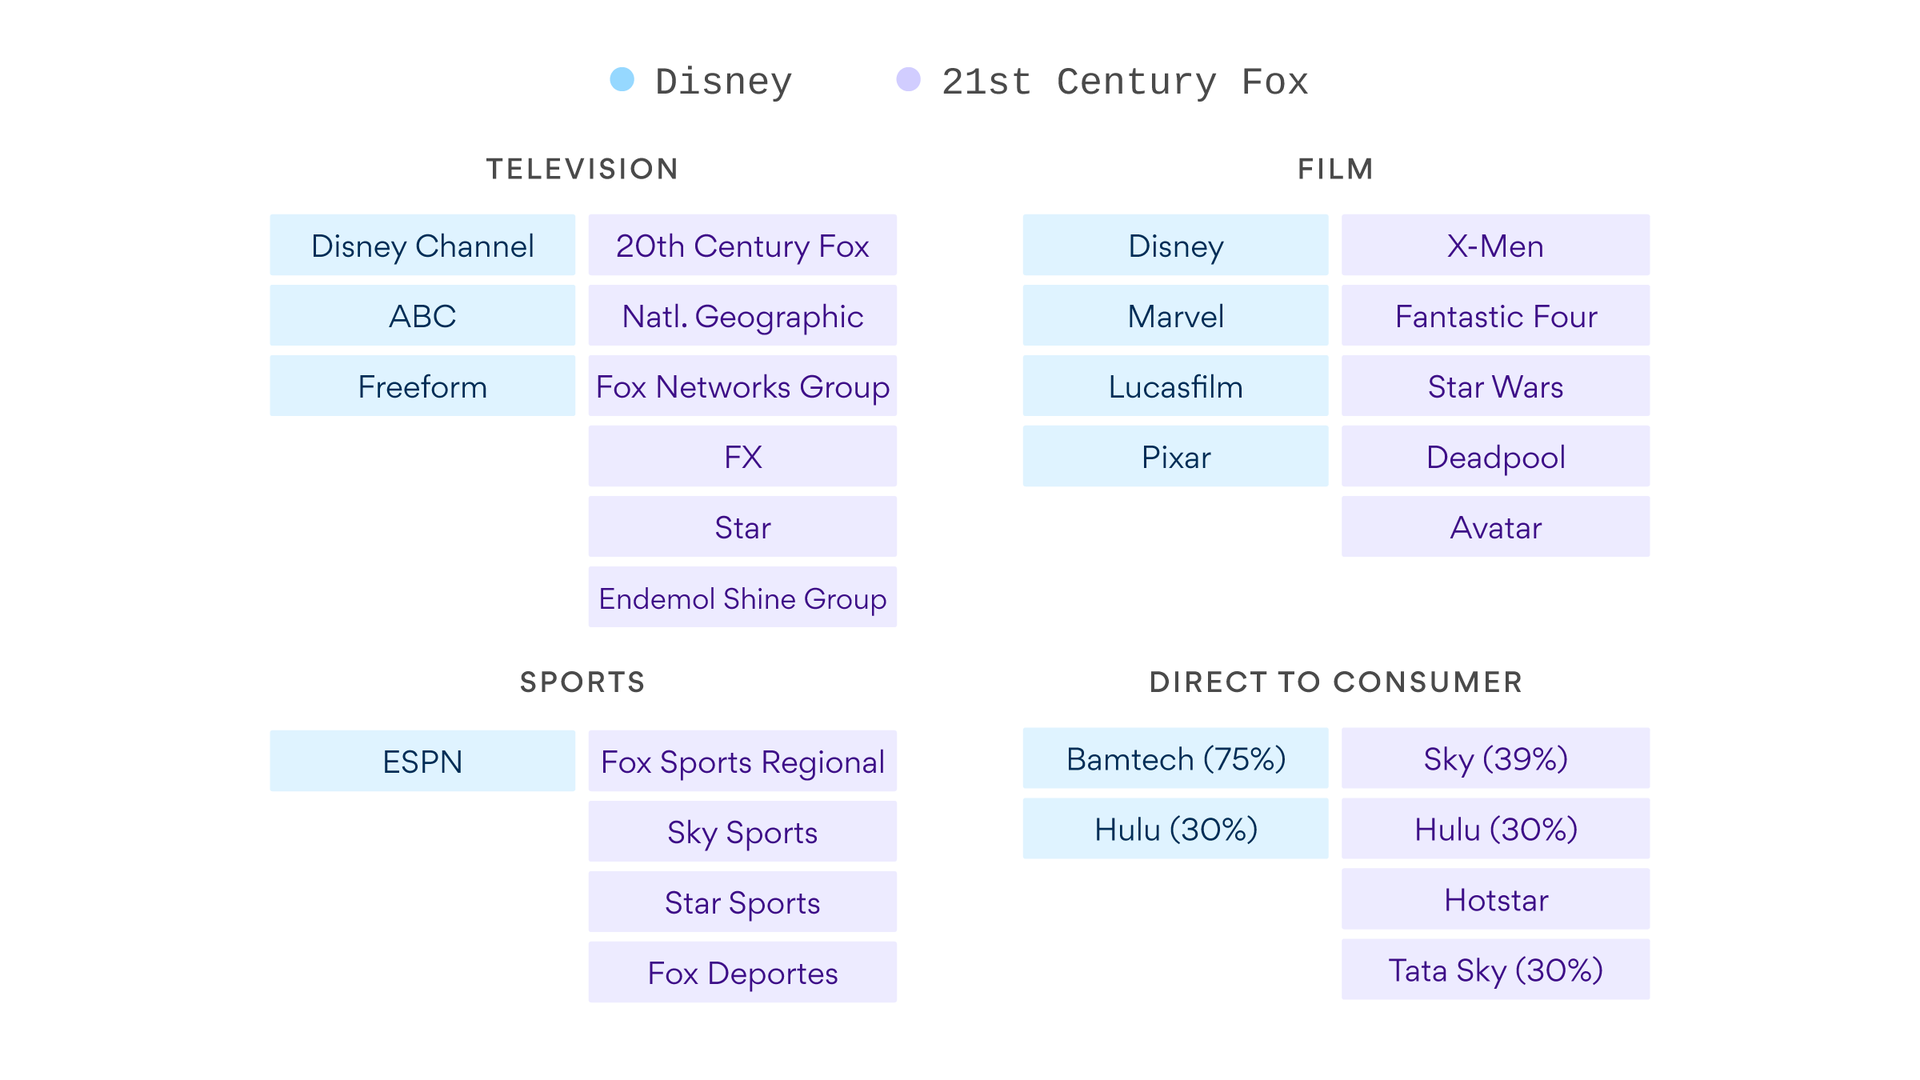 Here's what the new Disney/Fox merger looks like